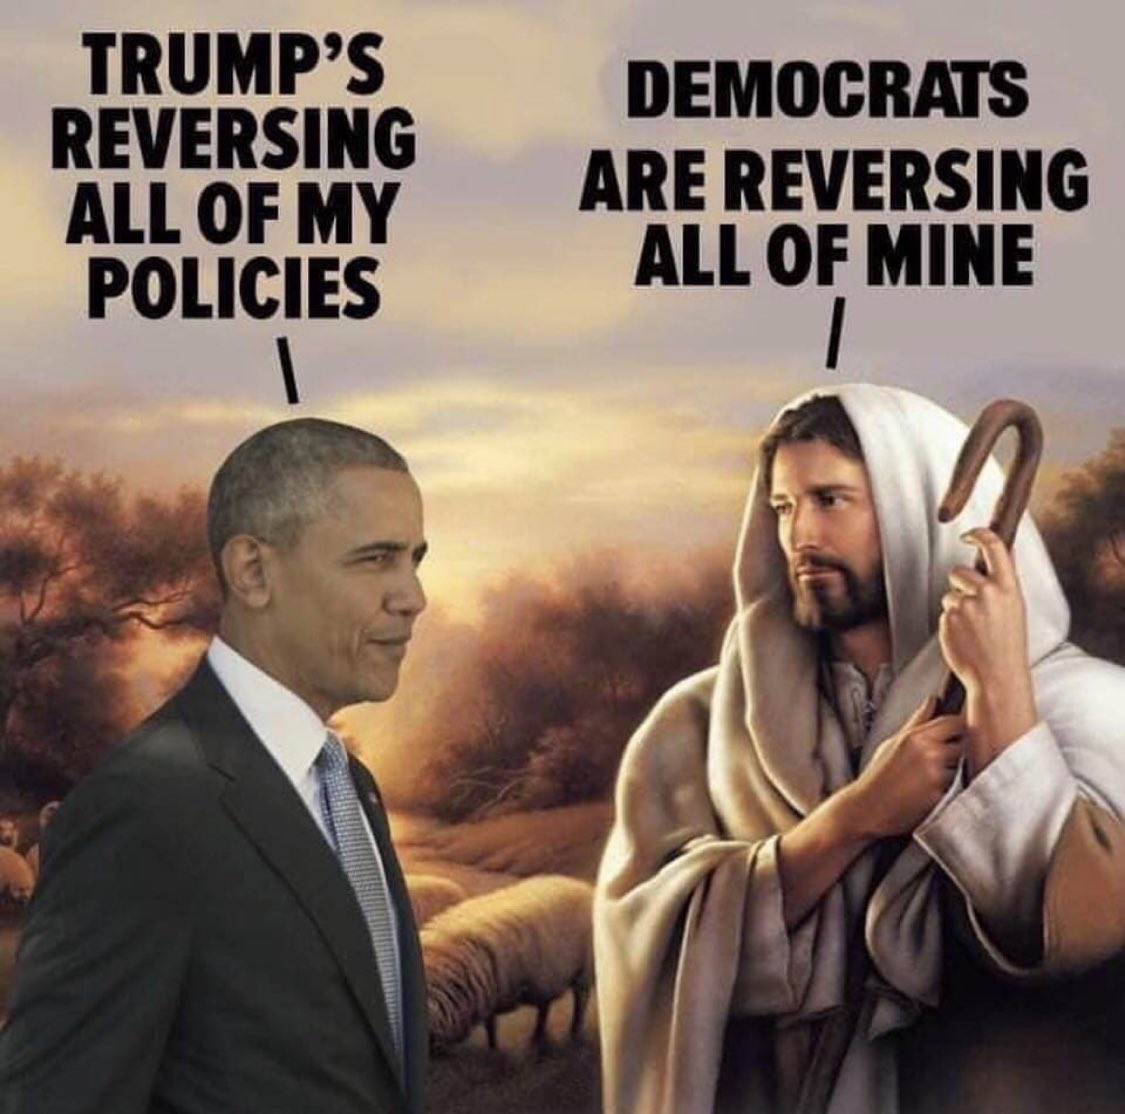 @mystormee @Randal68052371 @RickLRobbins @unctarheels5633 @judgejed1 @cyberwalkers @wwoodward921 @JoItalia_PhD @Real_AzKyle @RobertBradleyJ2 @RED_IN_PA @keith_kvpool310 @saywhn @Long1Ryder @SRex41563921 @RomesburgJeremy @karoljeanne11 @RightSassy @HesseltonSharon @BillDVino @JoeP45903147 Not like today's generation..😢 They have no respect for our LEO's 🤦🏻♀️ Some think the cops actually shot someone or just standing there.. I agree 100% God needs to back in our schools..